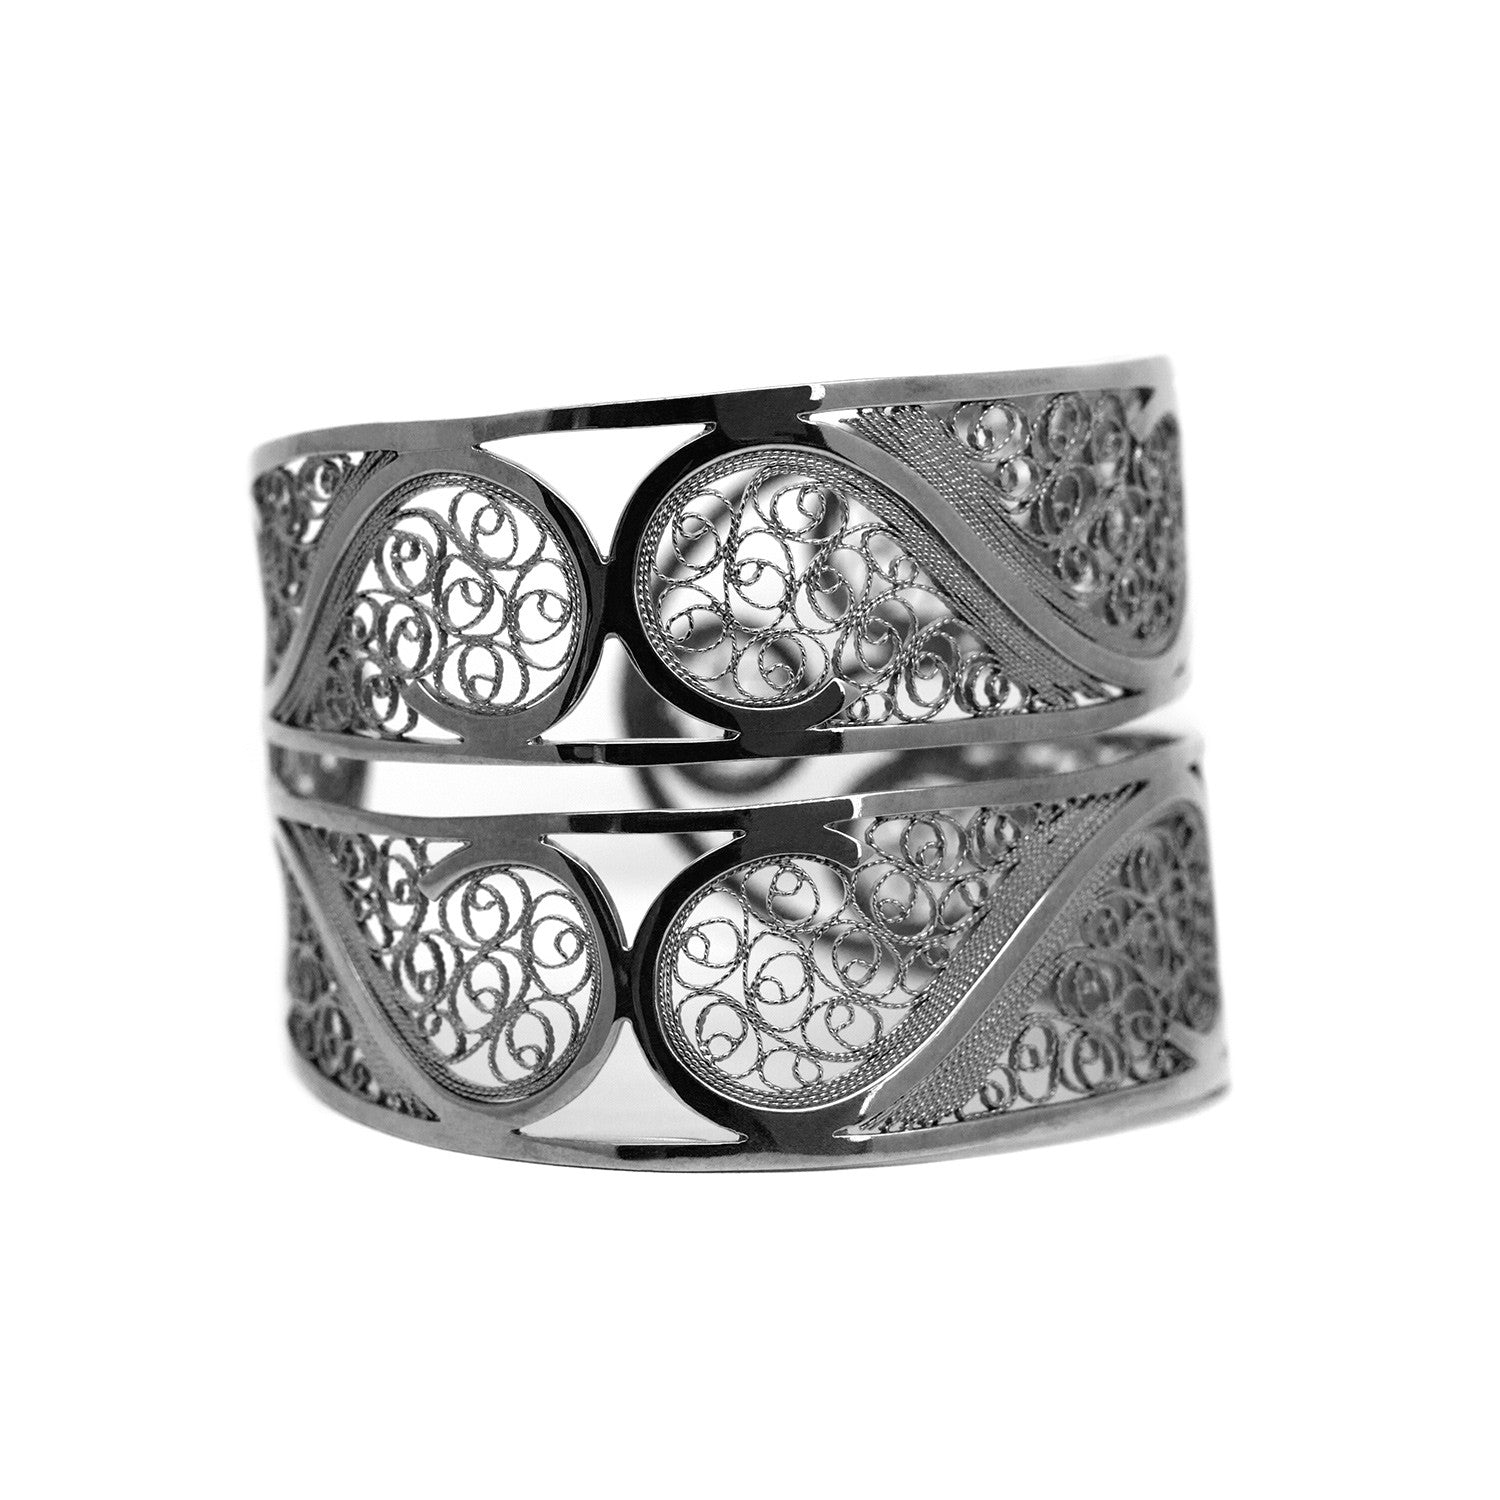 Filigree Links Bangle Bracelet. Black - Arabel Lebrusan